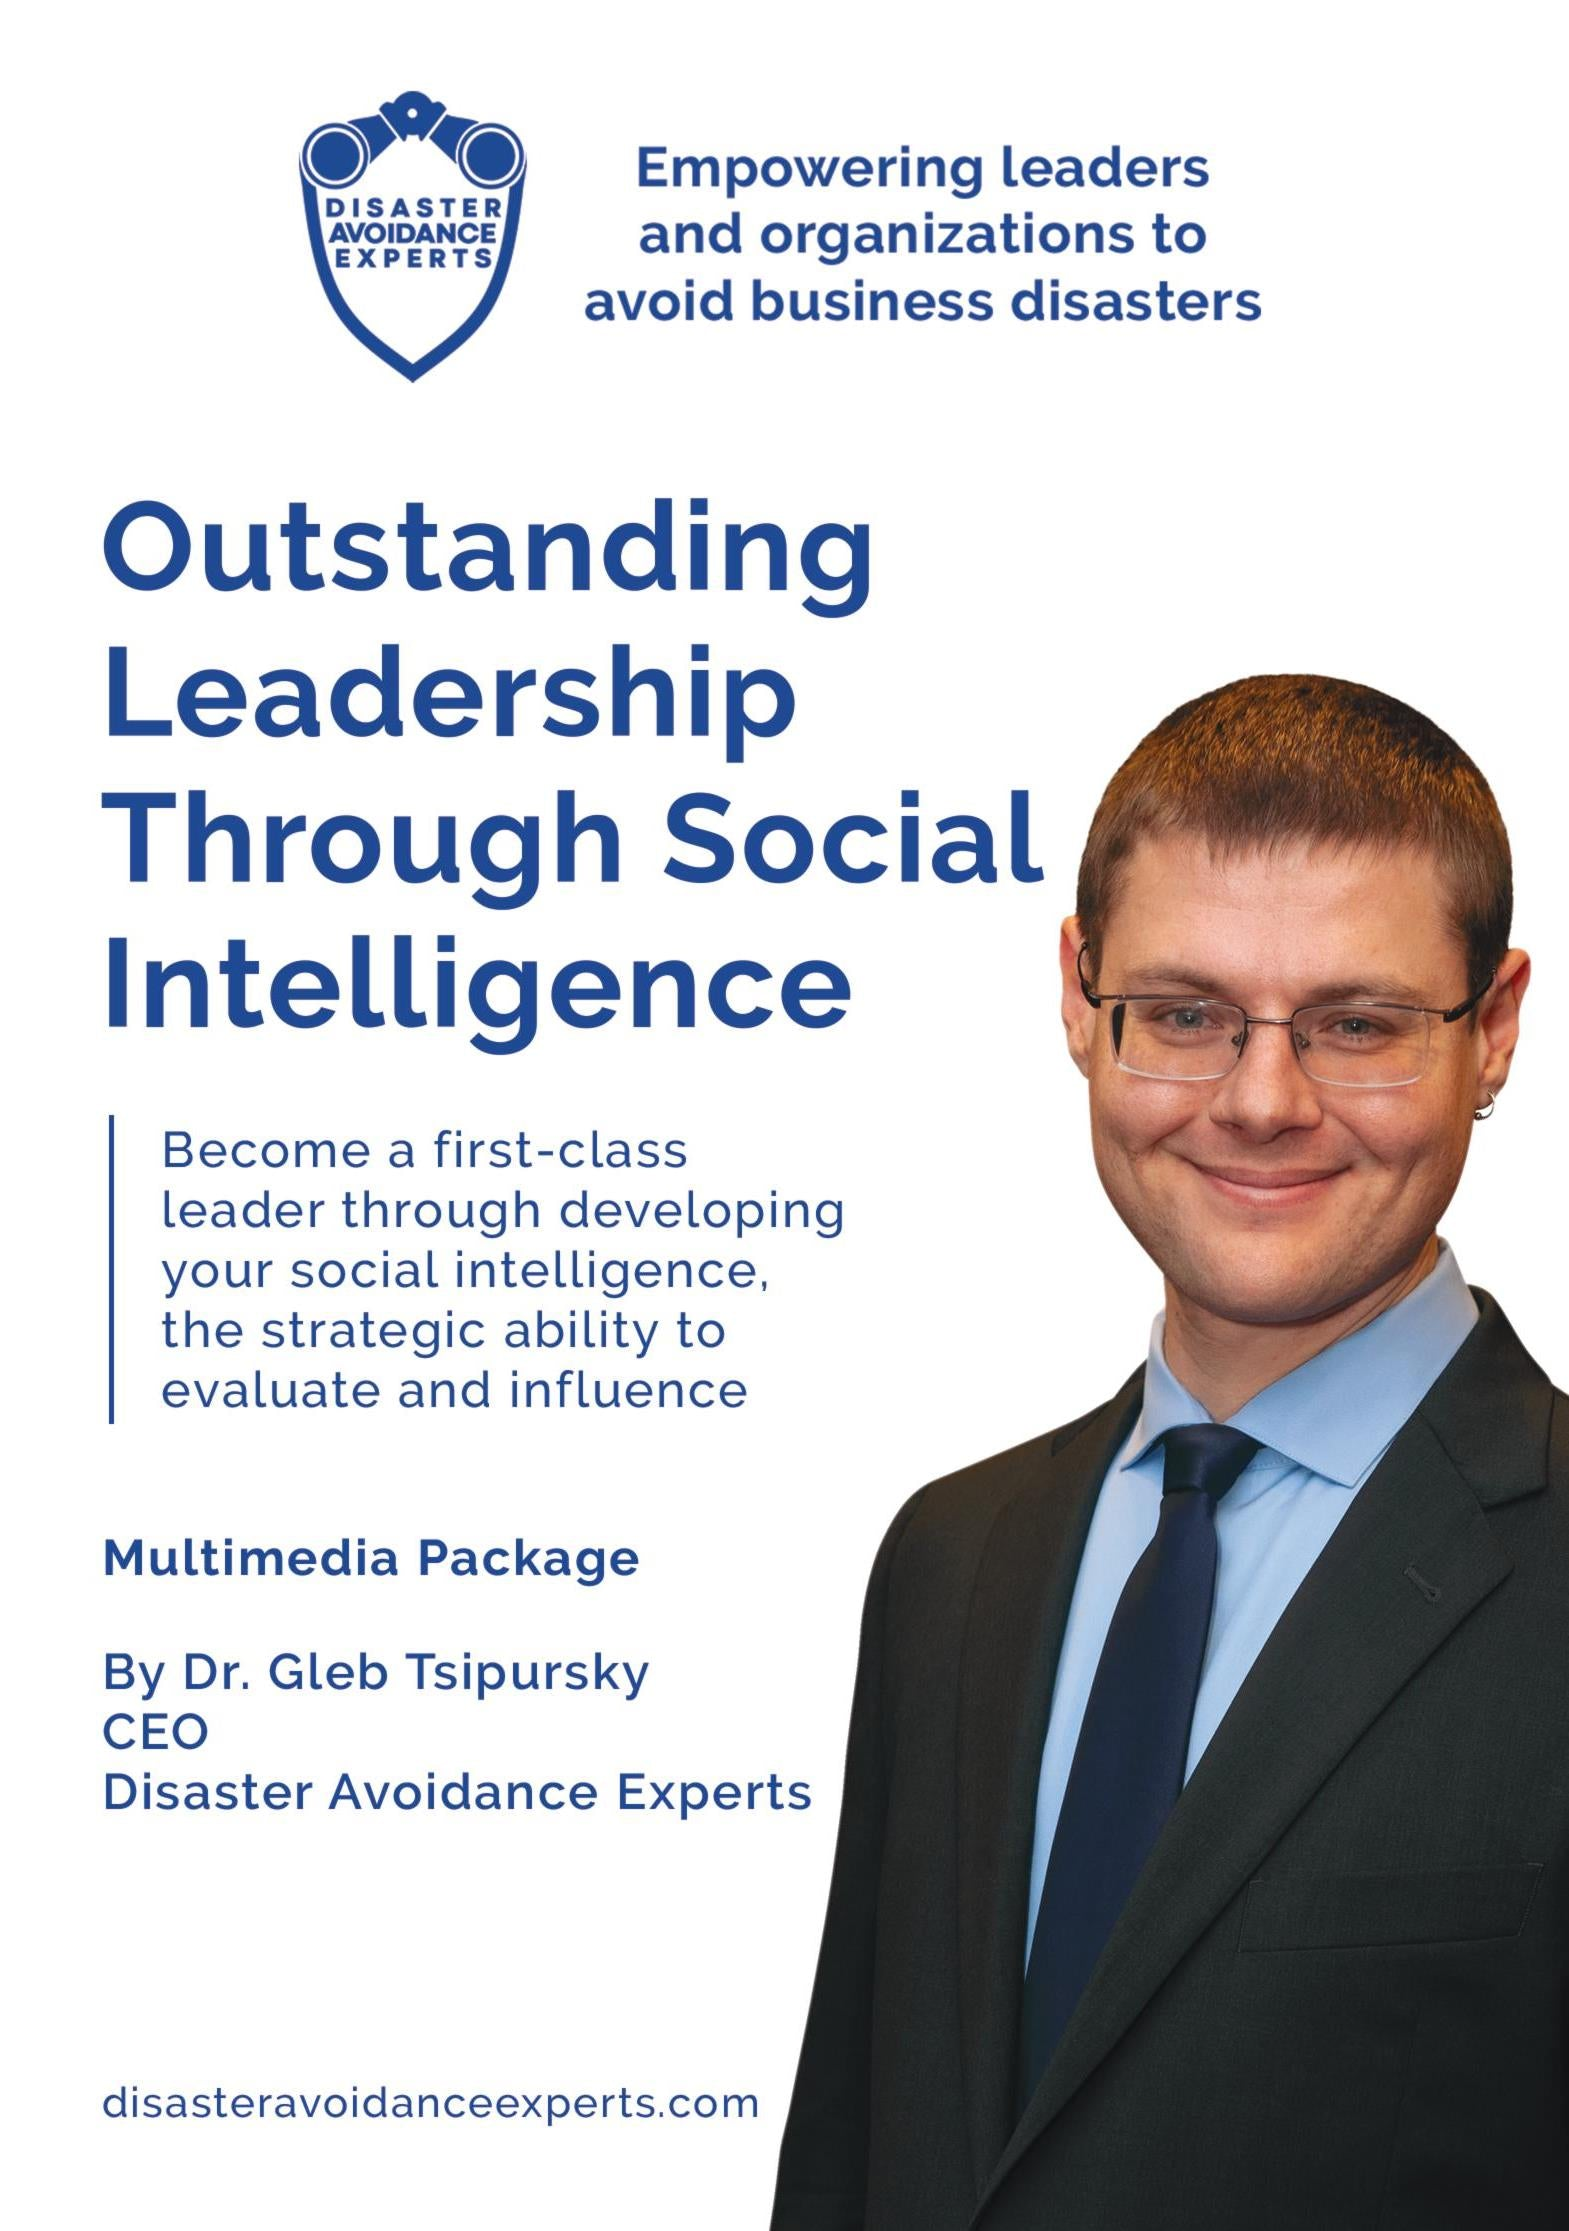 Multimedia Package: Outstanding Leadership Through Social Intelligence